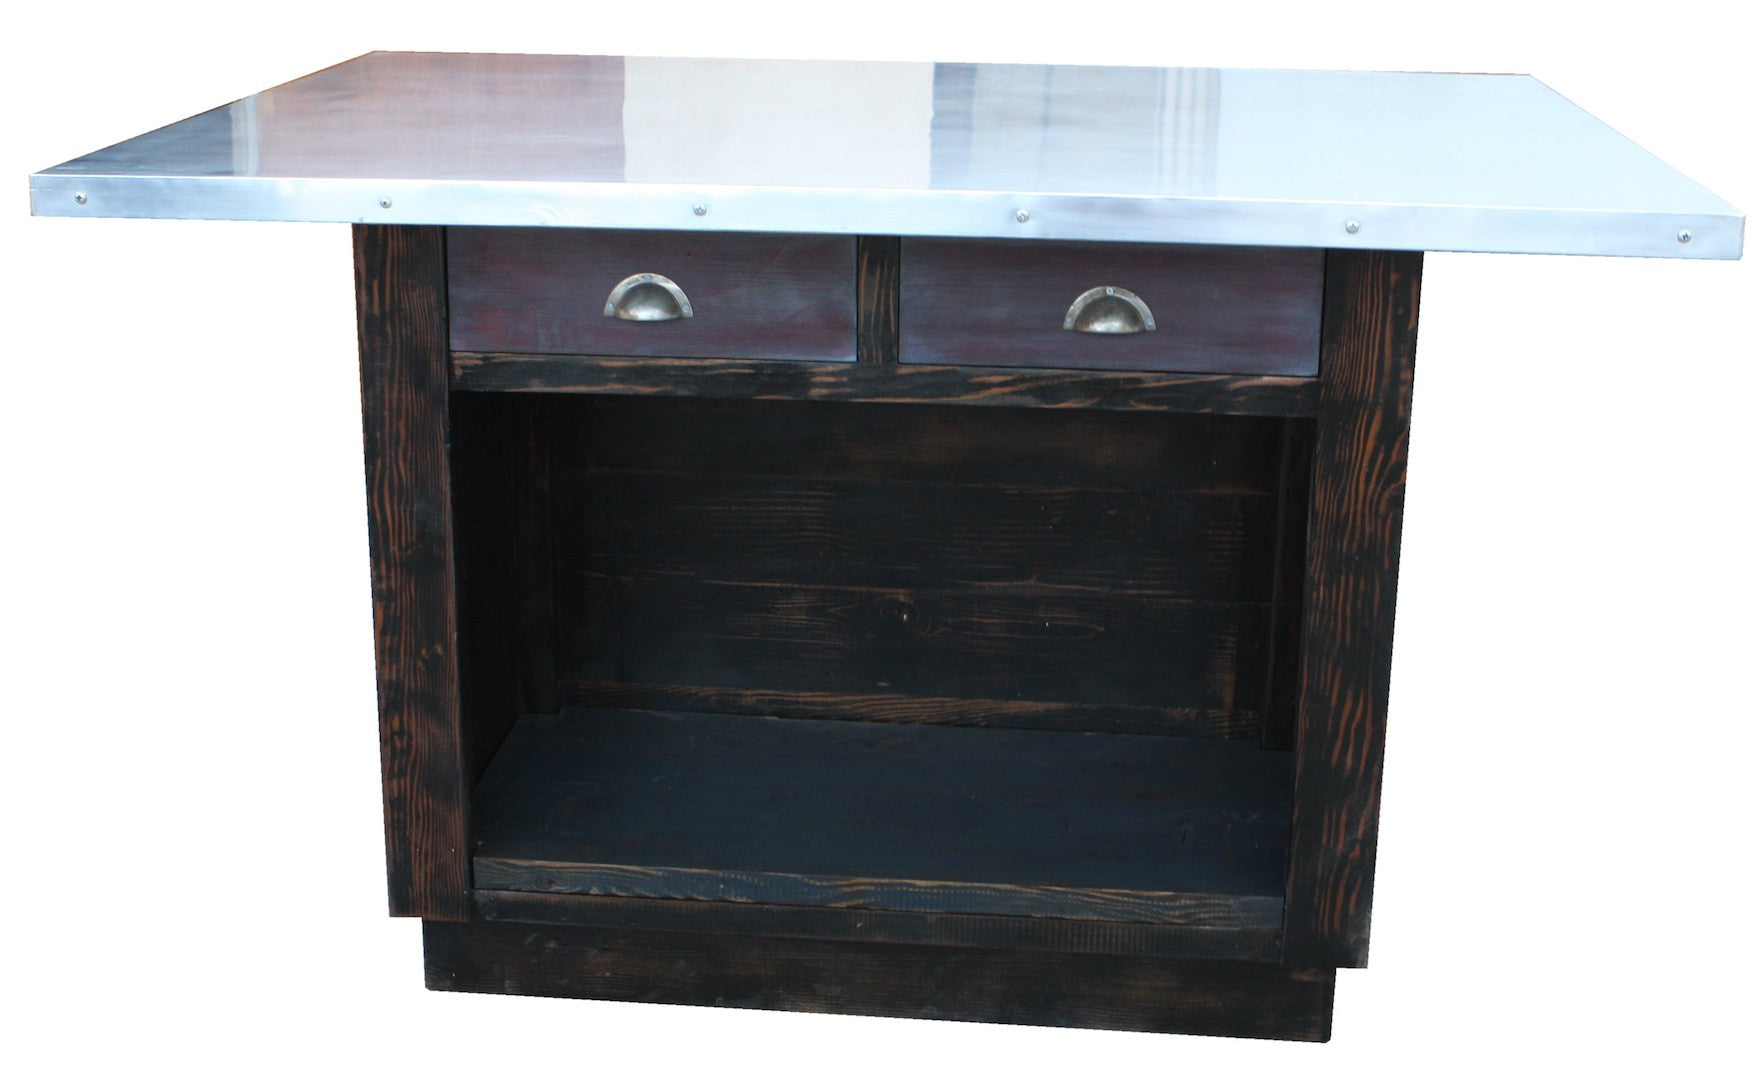 Custom Zinc Top Reclaimed Wood Kitchen Island